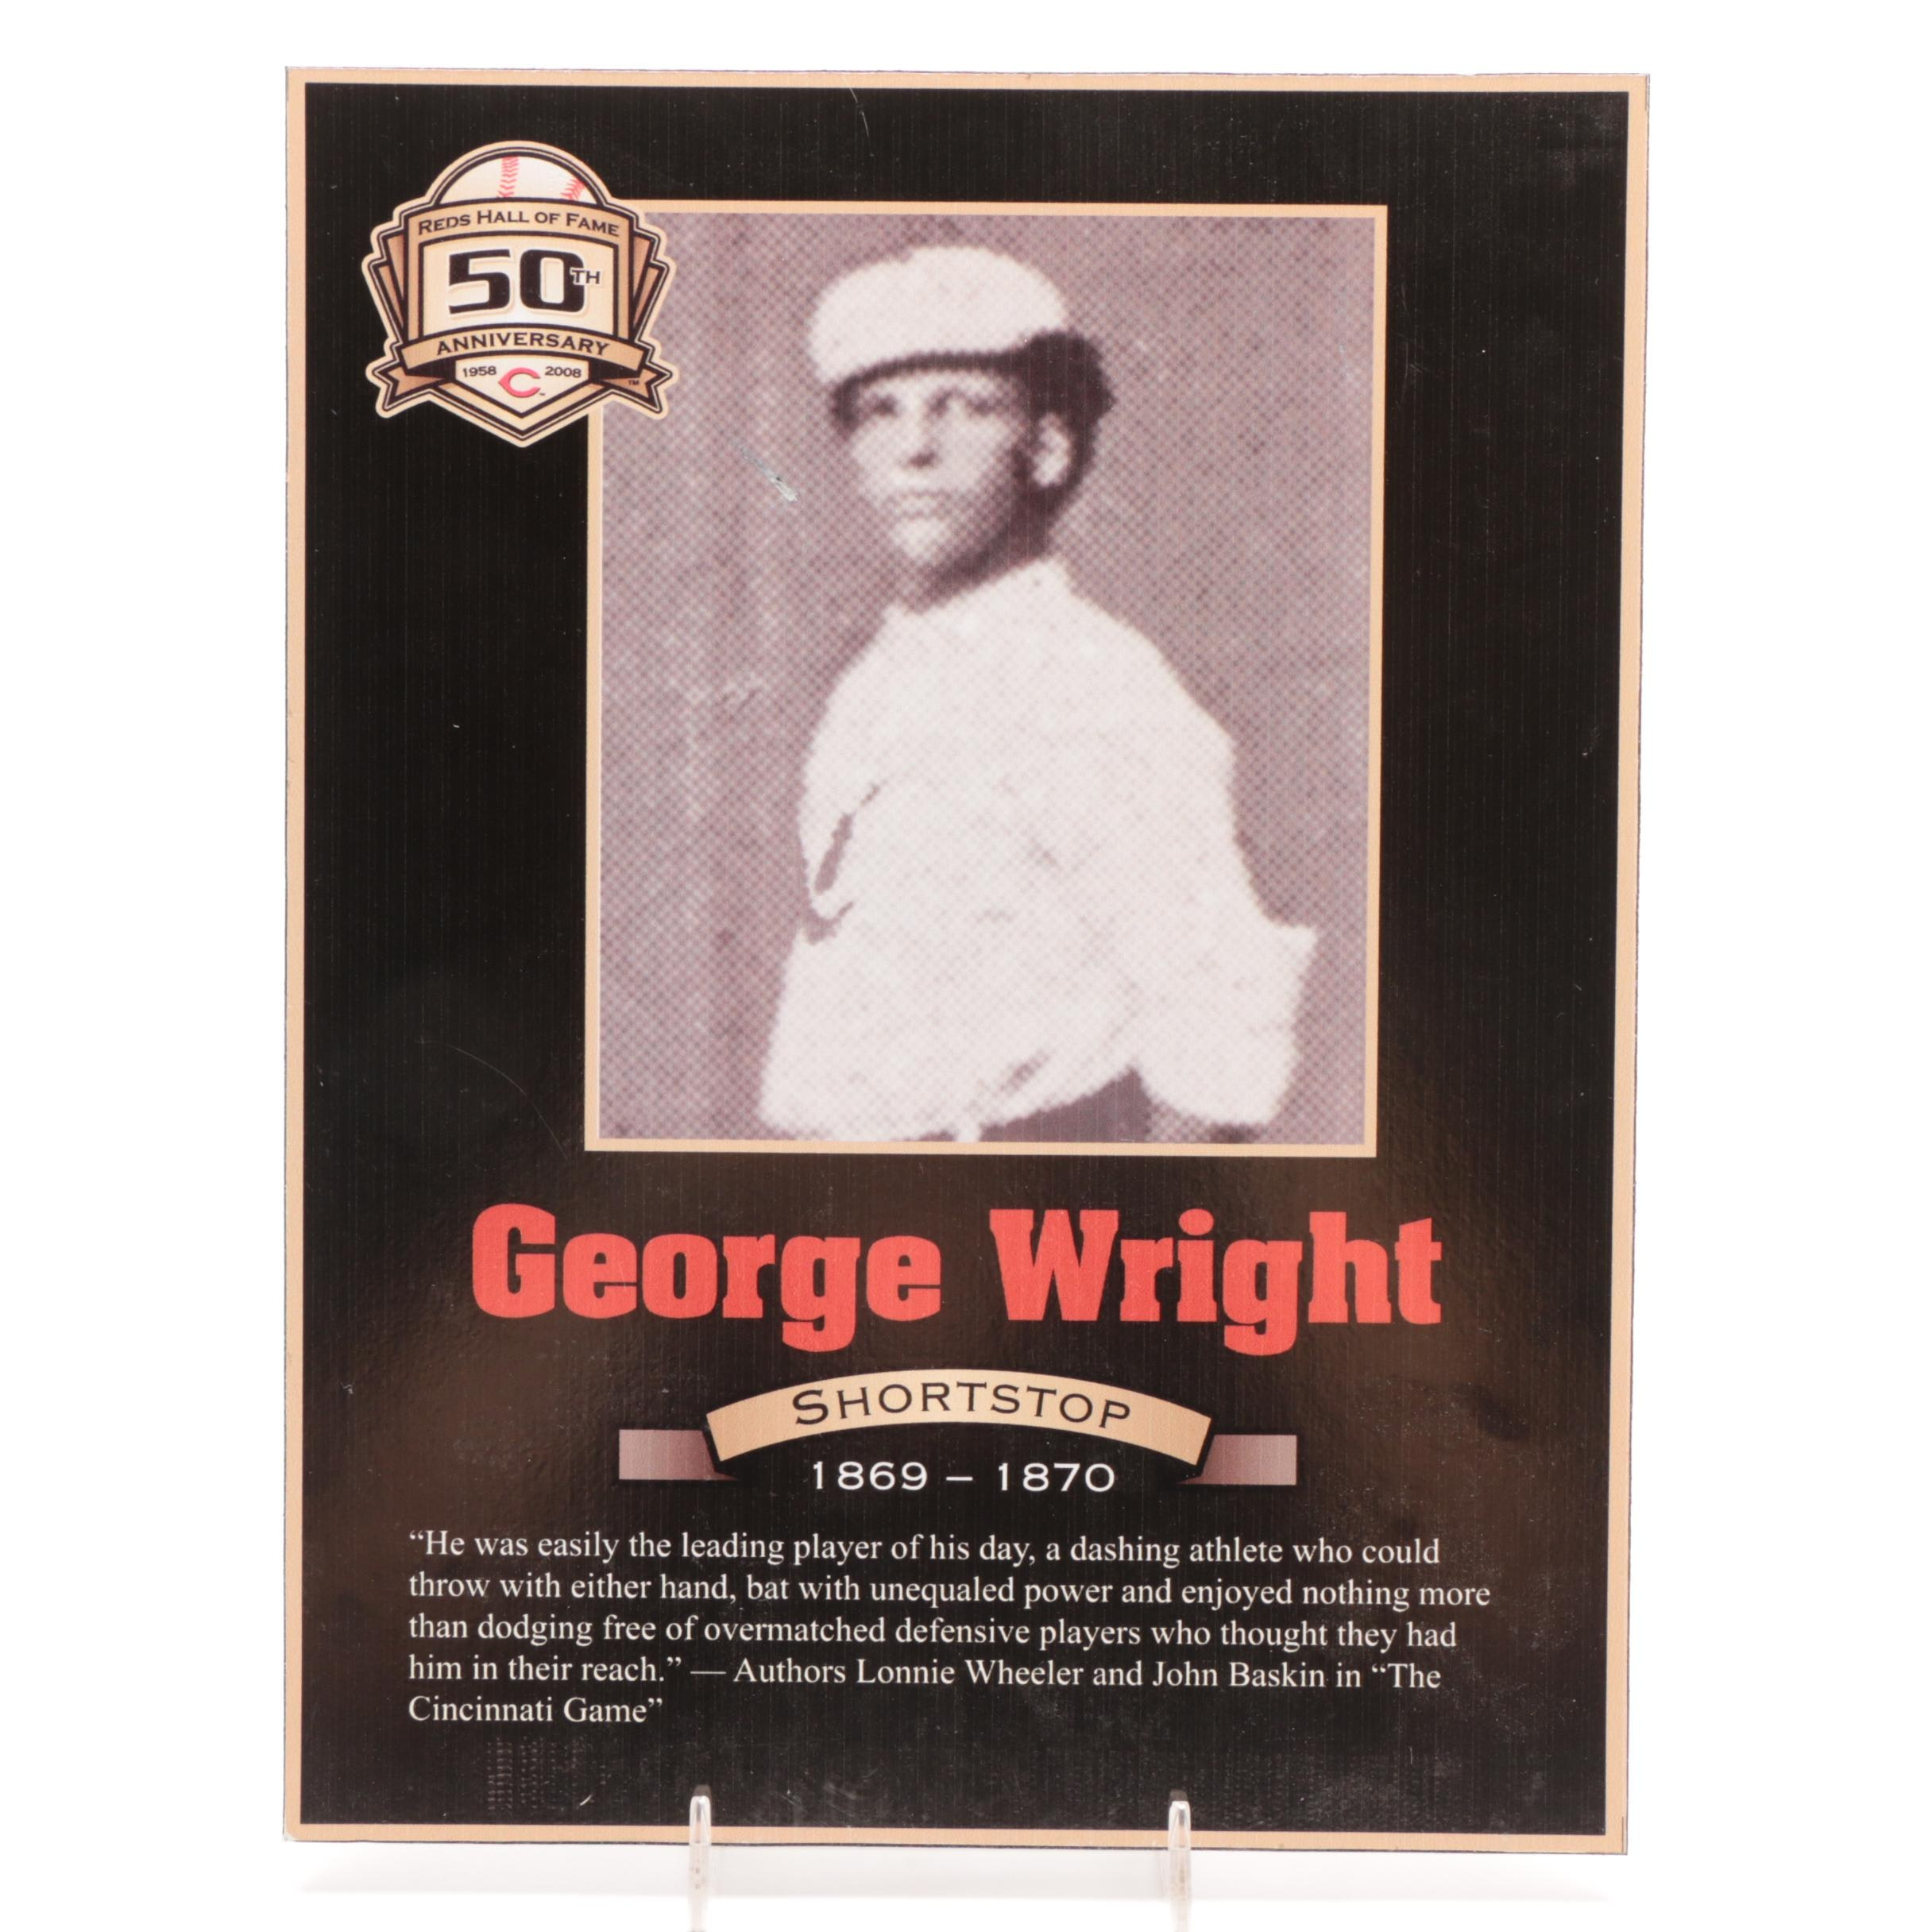 George Wright 1869-1870 Reds Hall of Fame Photo Plaque COA